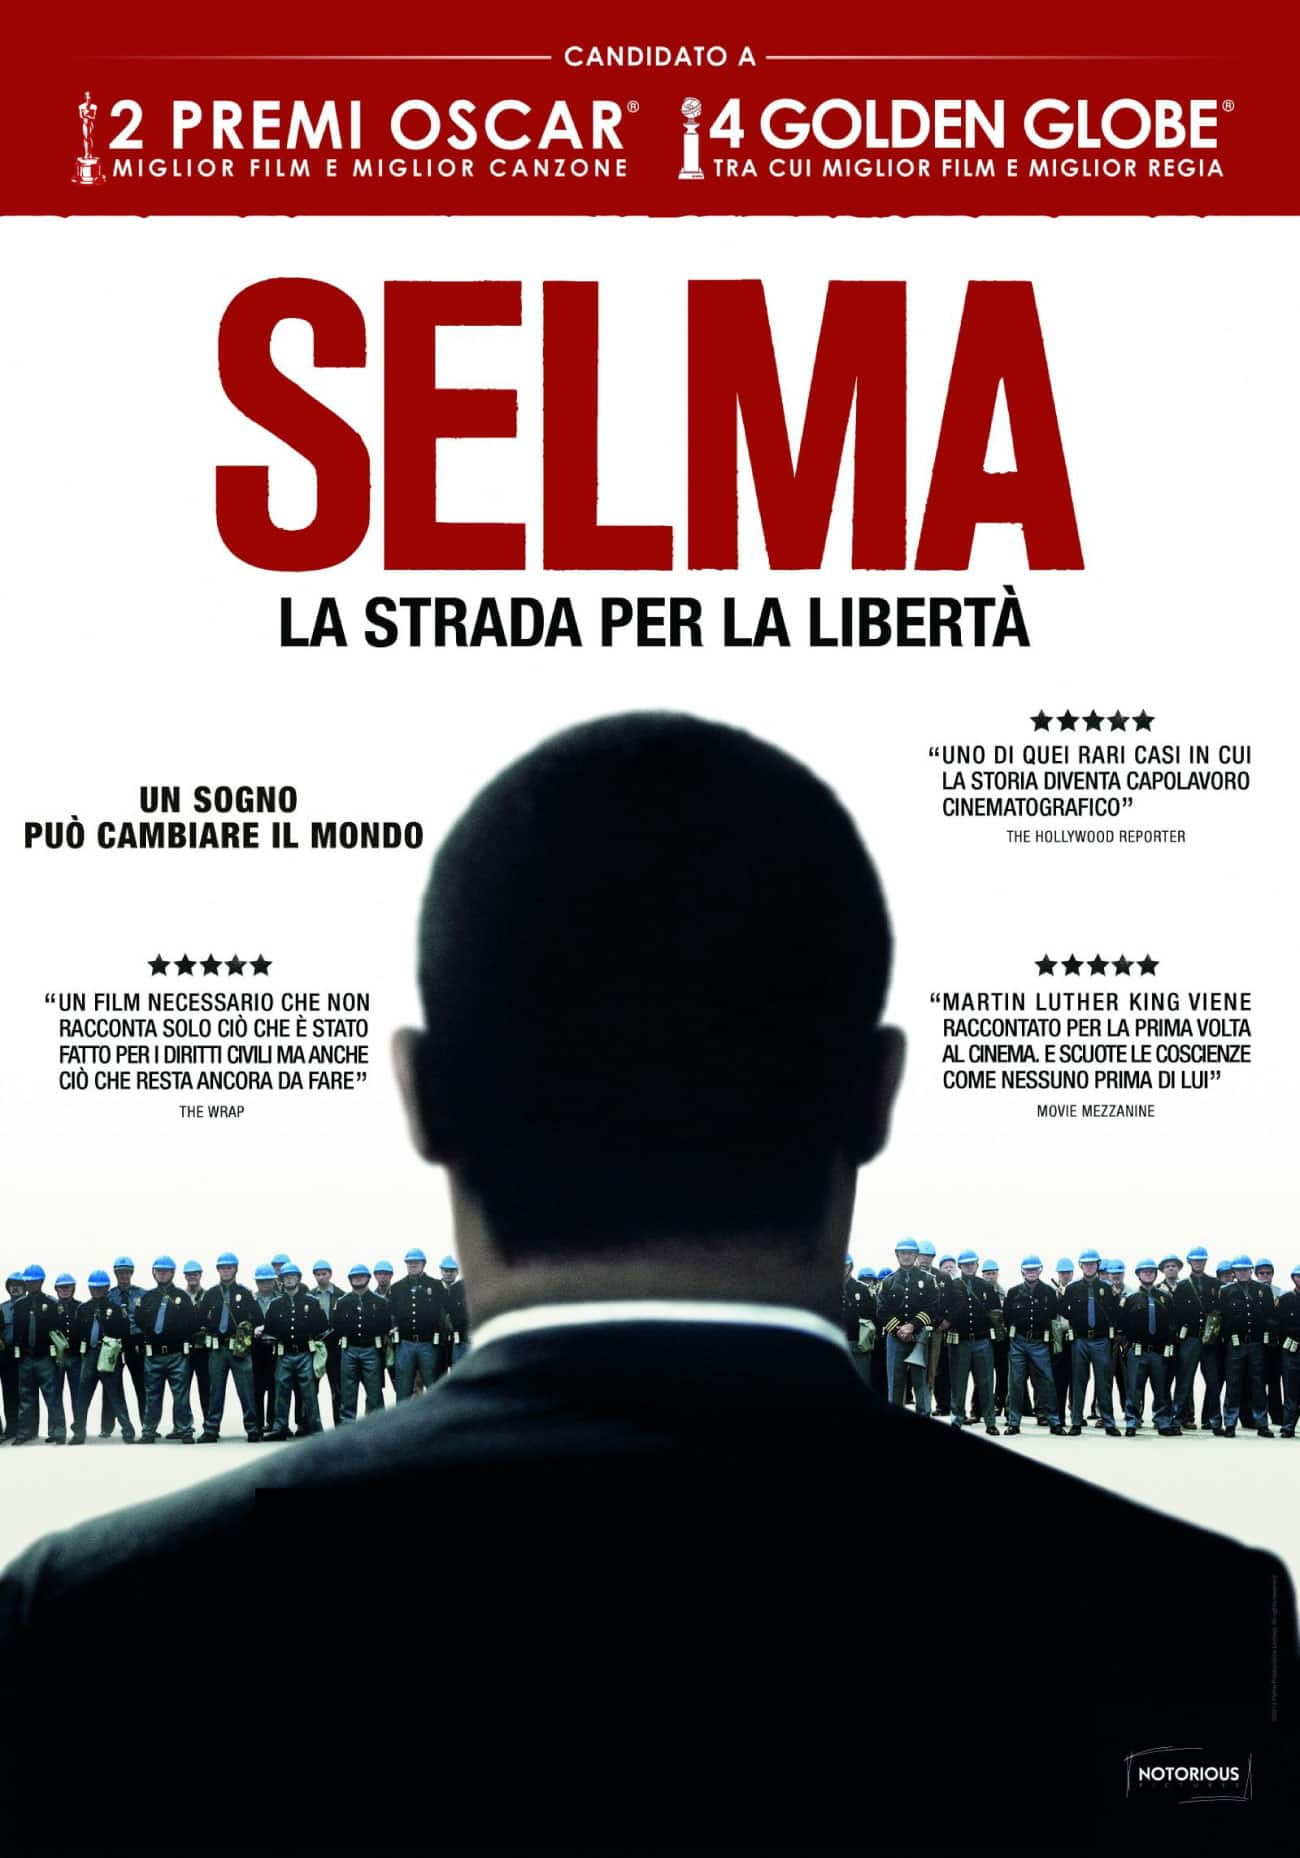 Film Selma - Martin Luther King - Studio web Netiquette